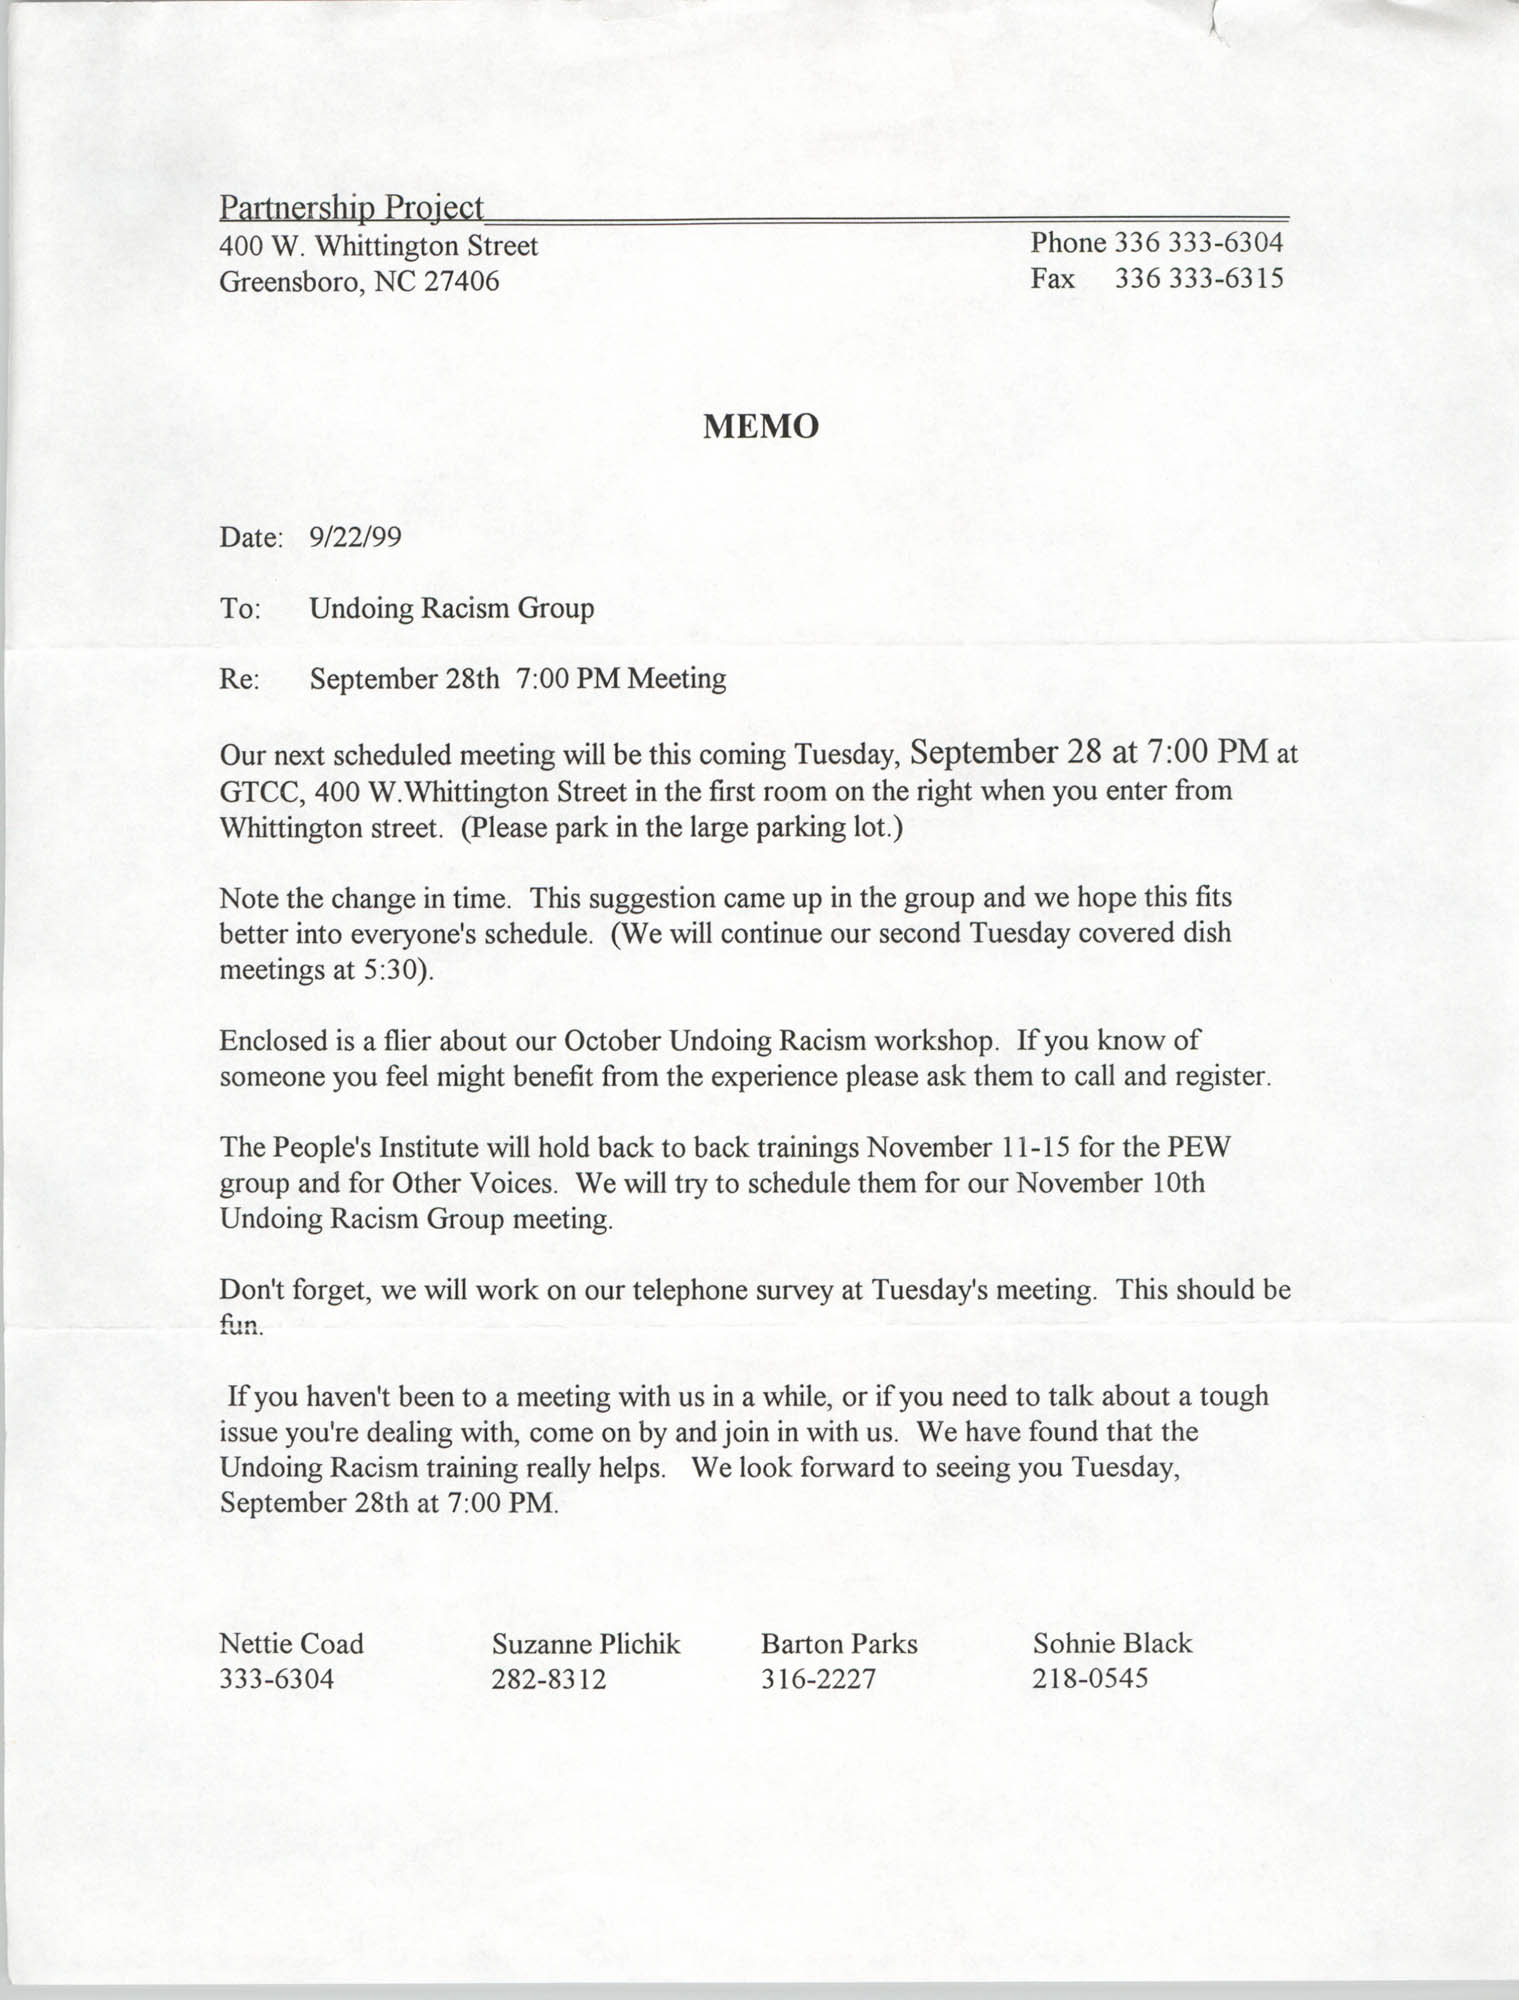 Memorandum, Partnership Project, September 22, 1999